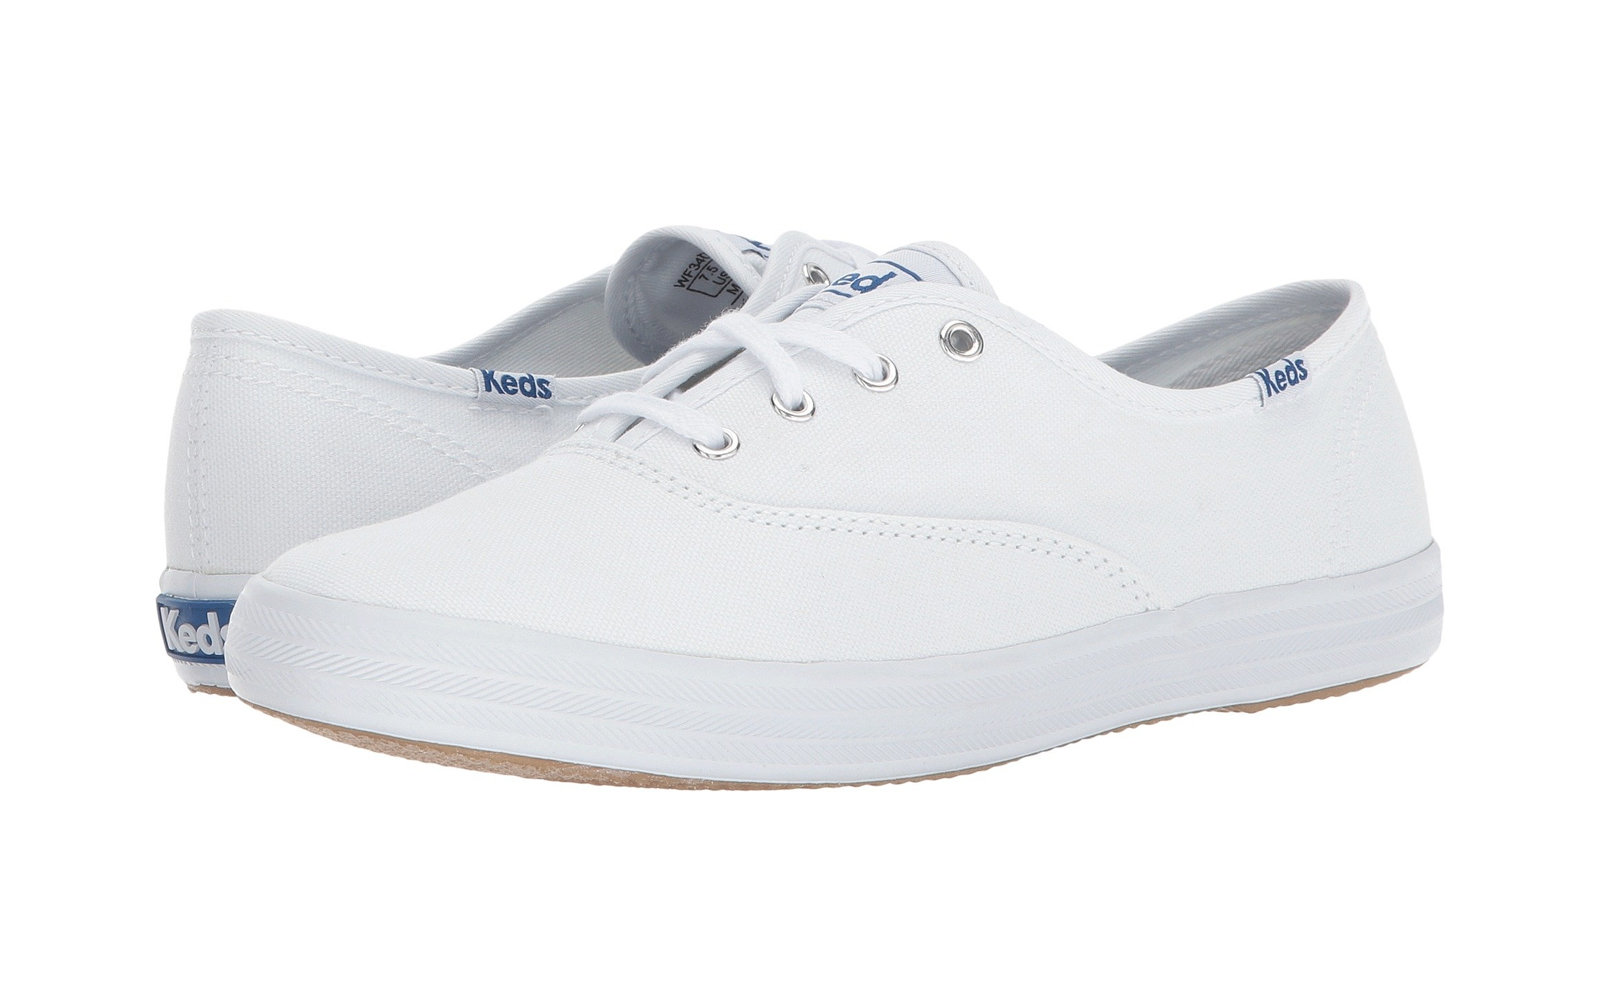 a0d06128d210 Keds Champion Canvas CVO in White Canvas. Best Sneakers on Sale at Zappos